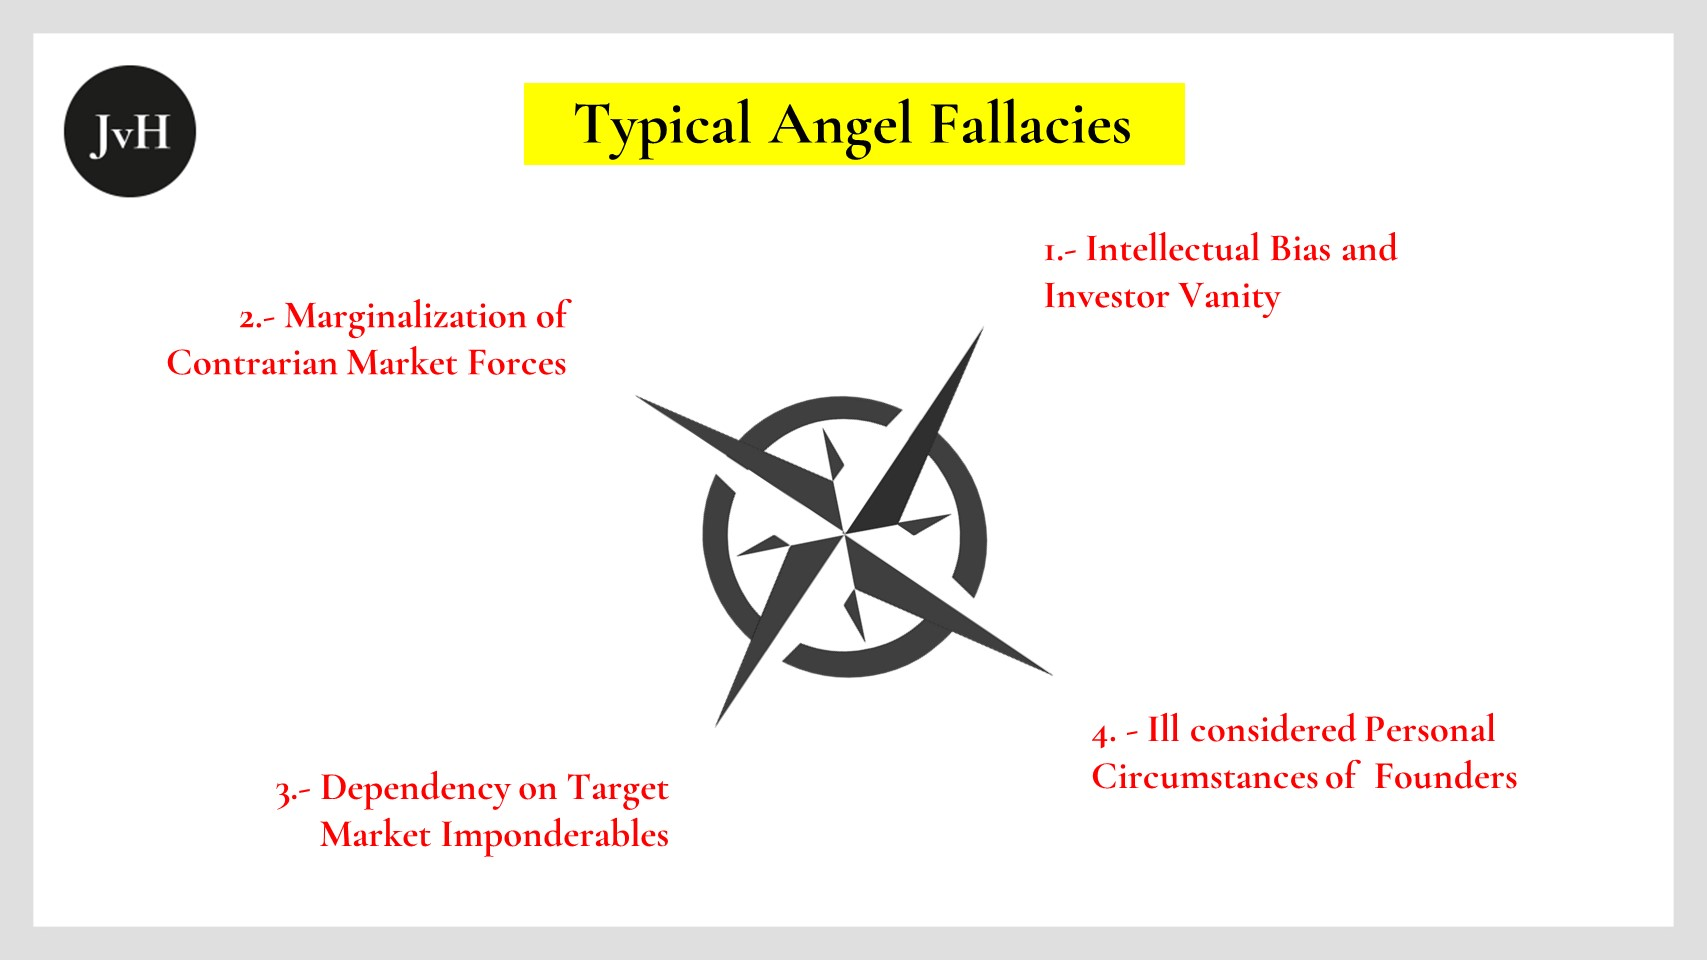 Typical Angel Fallacies (c) 2018 Julian v. Hassell